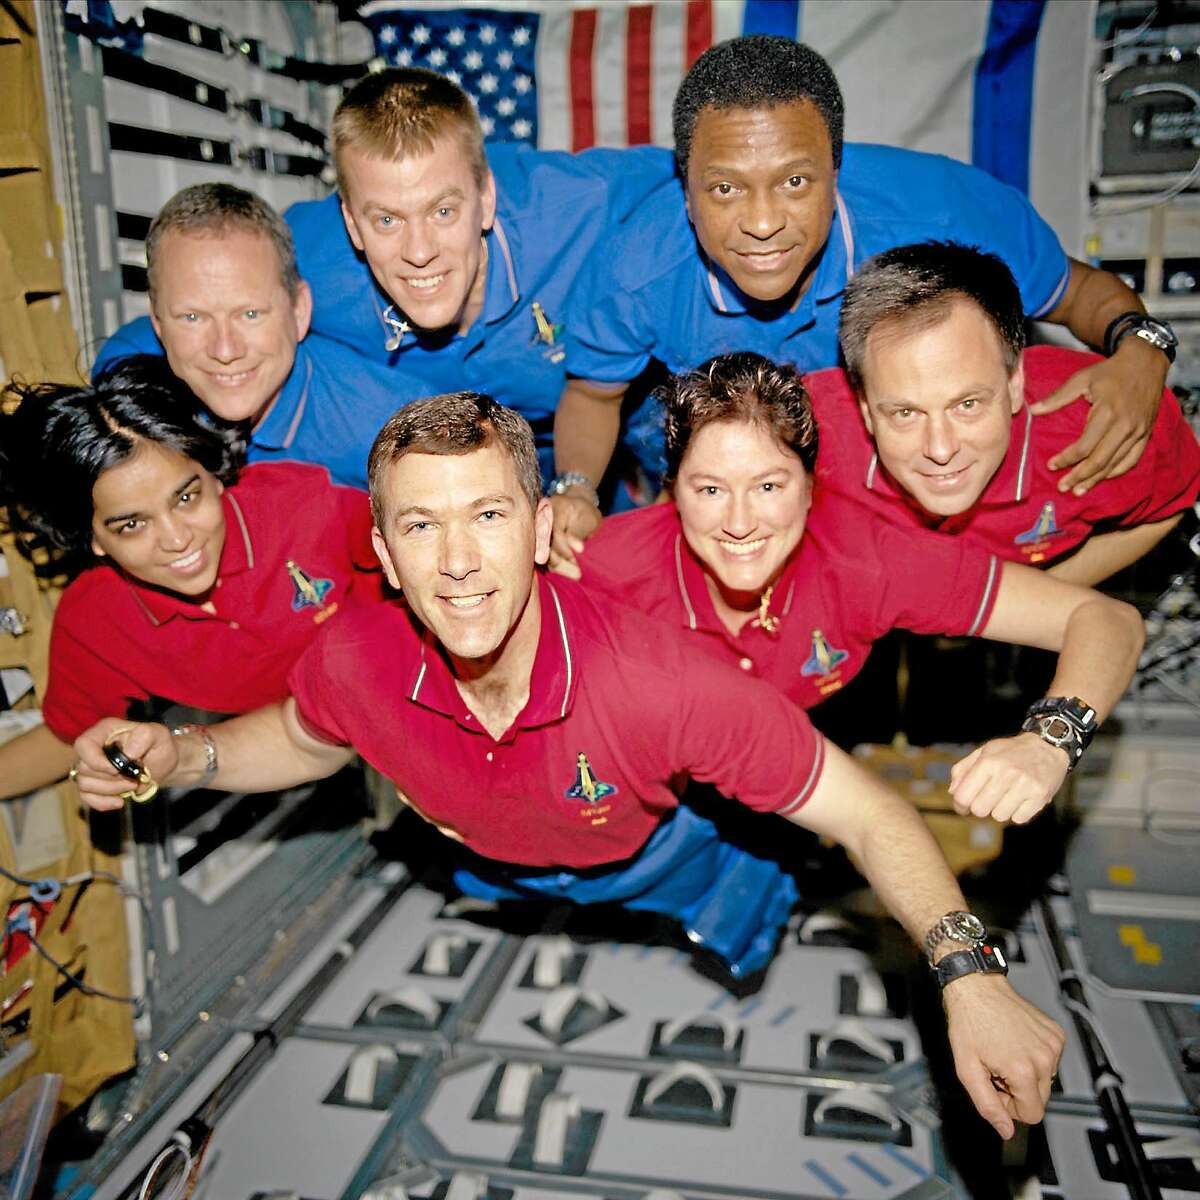 Associated Press ¬ This photo provided by NASA in June 2003 shows the Columbia crew. This picture was on a roll of unprocessed film later recovered by searchers from the debris. From the left are astronauts Kalpana Chawla, mission specialist; Rick D. Husband, mission commander; Laurel B. Clark, mission specialist; and Ilan Ramon, payload specialist. From the left (top row) are astronauts David M. Brown, mission specialist; William C. McCool, pilot; and Michael P. Anderson, payload commander.